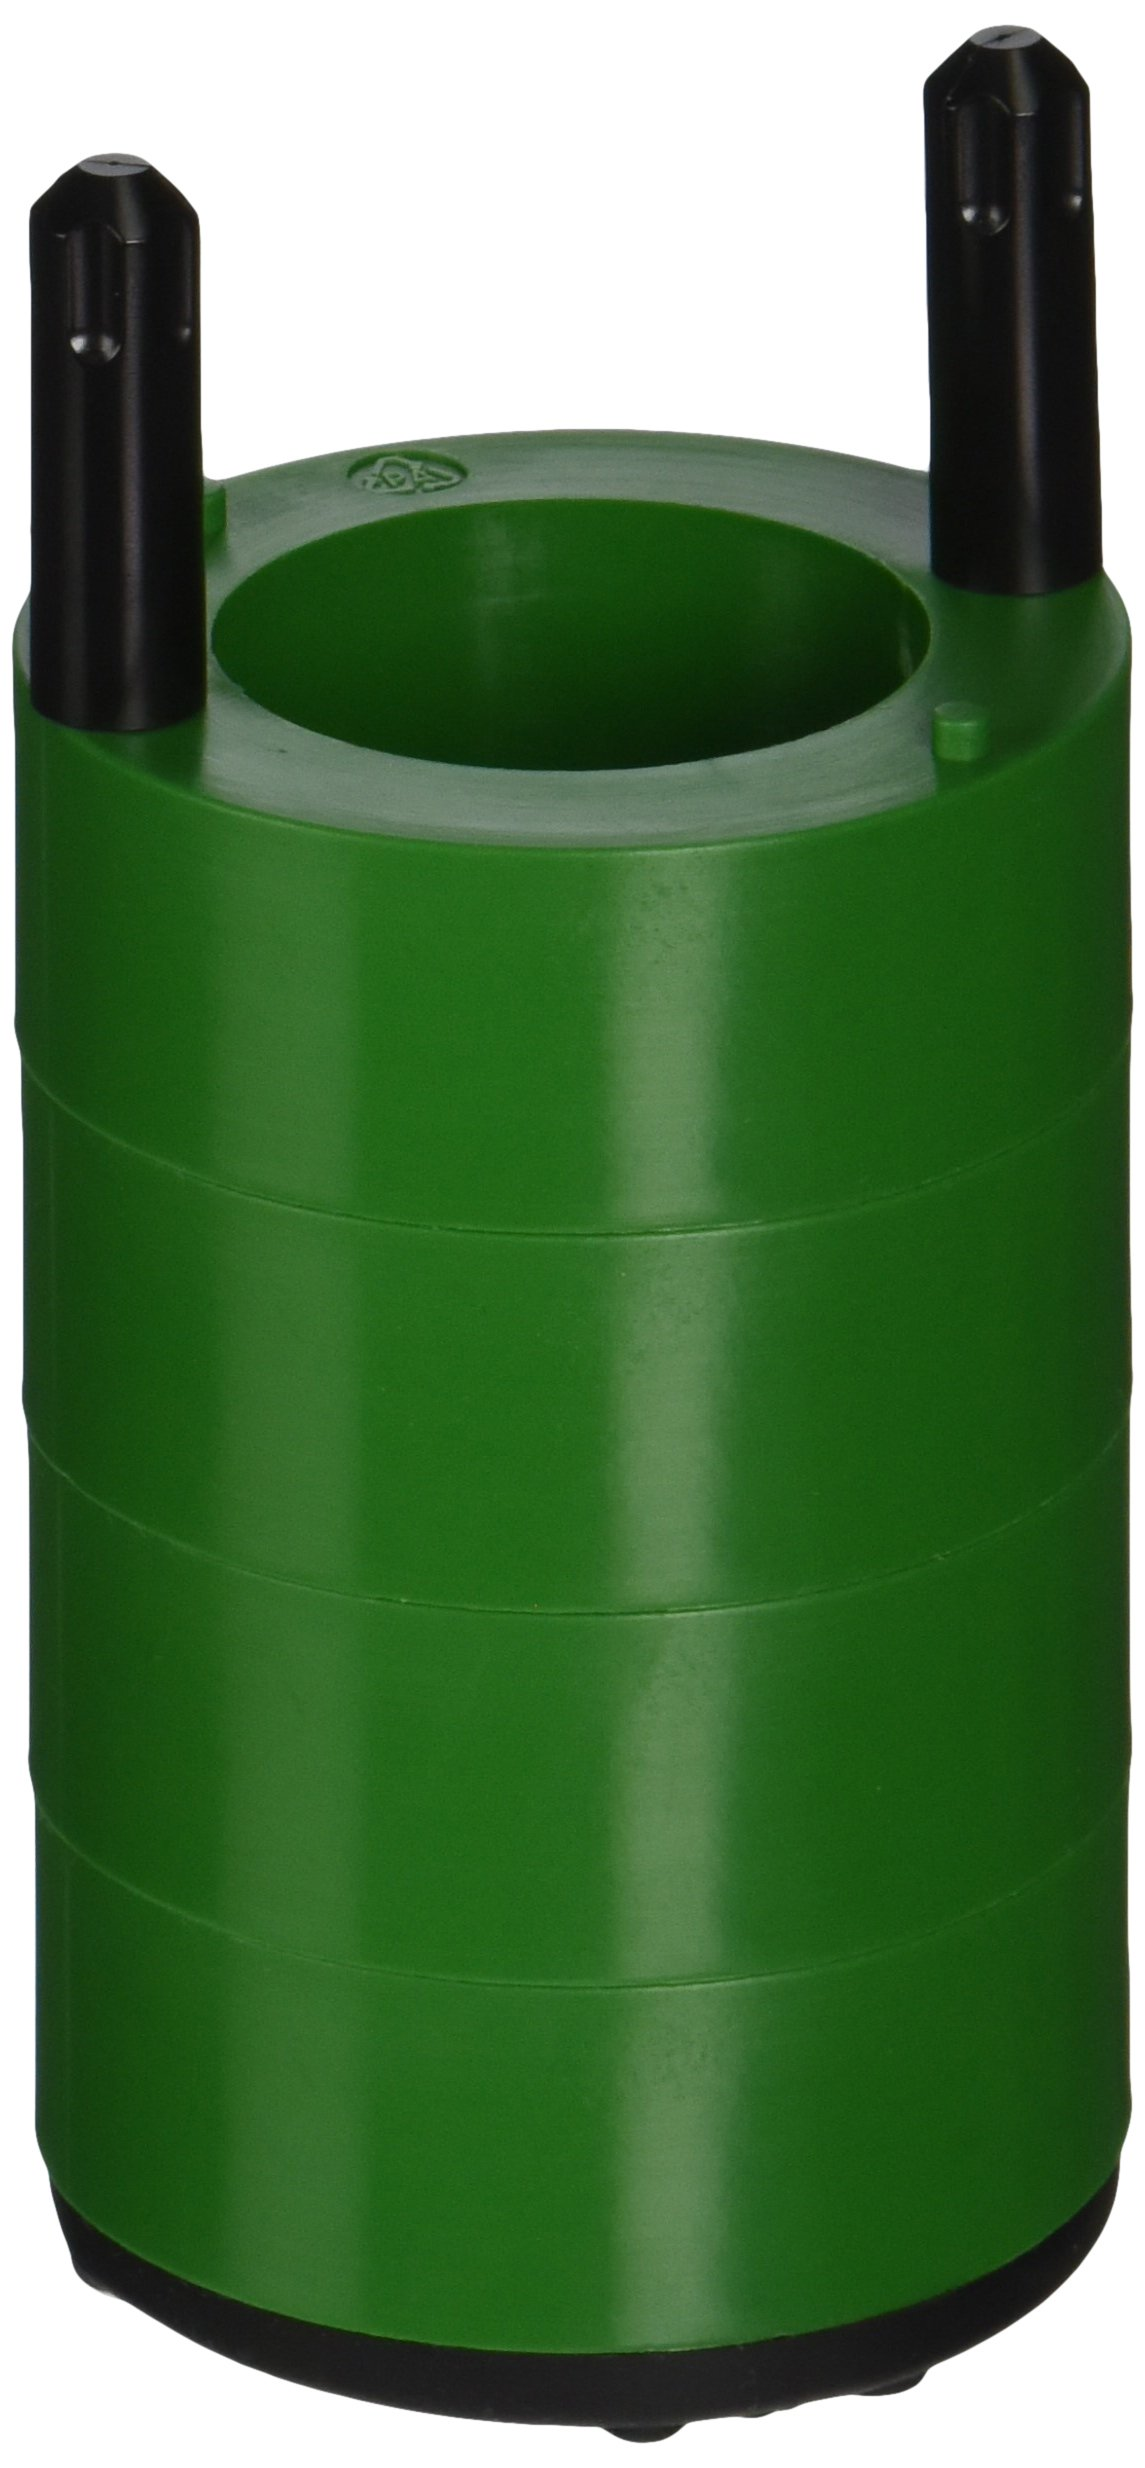 THERMO FISHER SCIENTIFIC 75008182 Centrifuge Adapter for Round Bucket, 1 mL x 50 mL Capacity DIN Standard Tube, Green by Thermo Fisher Scientific (Image #1)